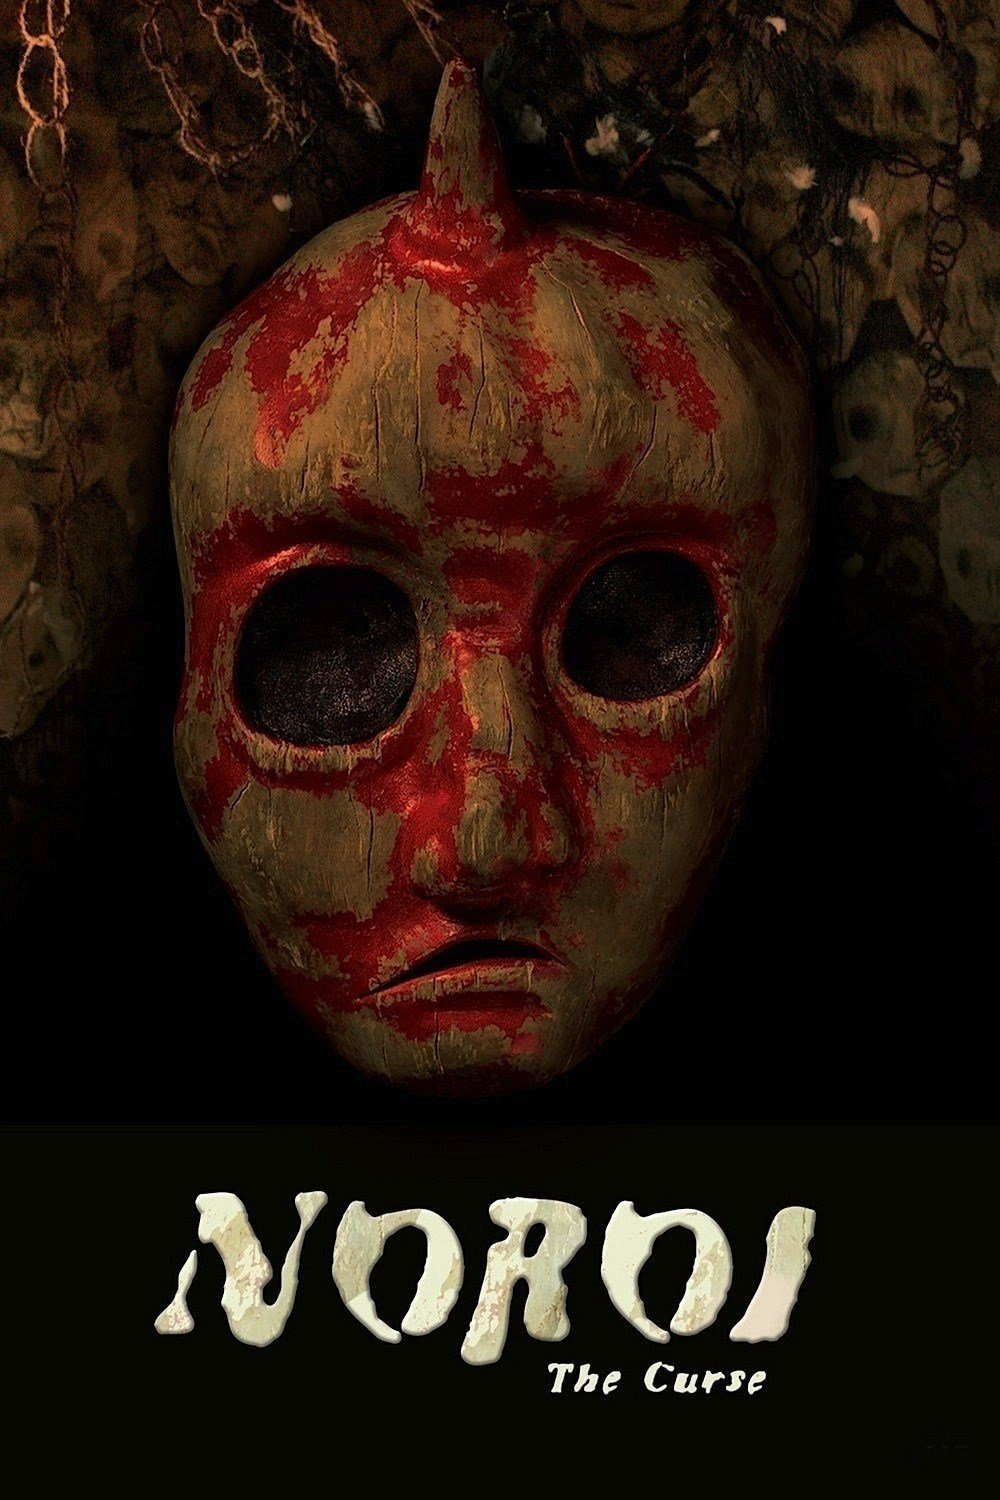 The Curse (Noroi), 2005 mockumentary horror best лучшие фильмы ужасов mondo cane